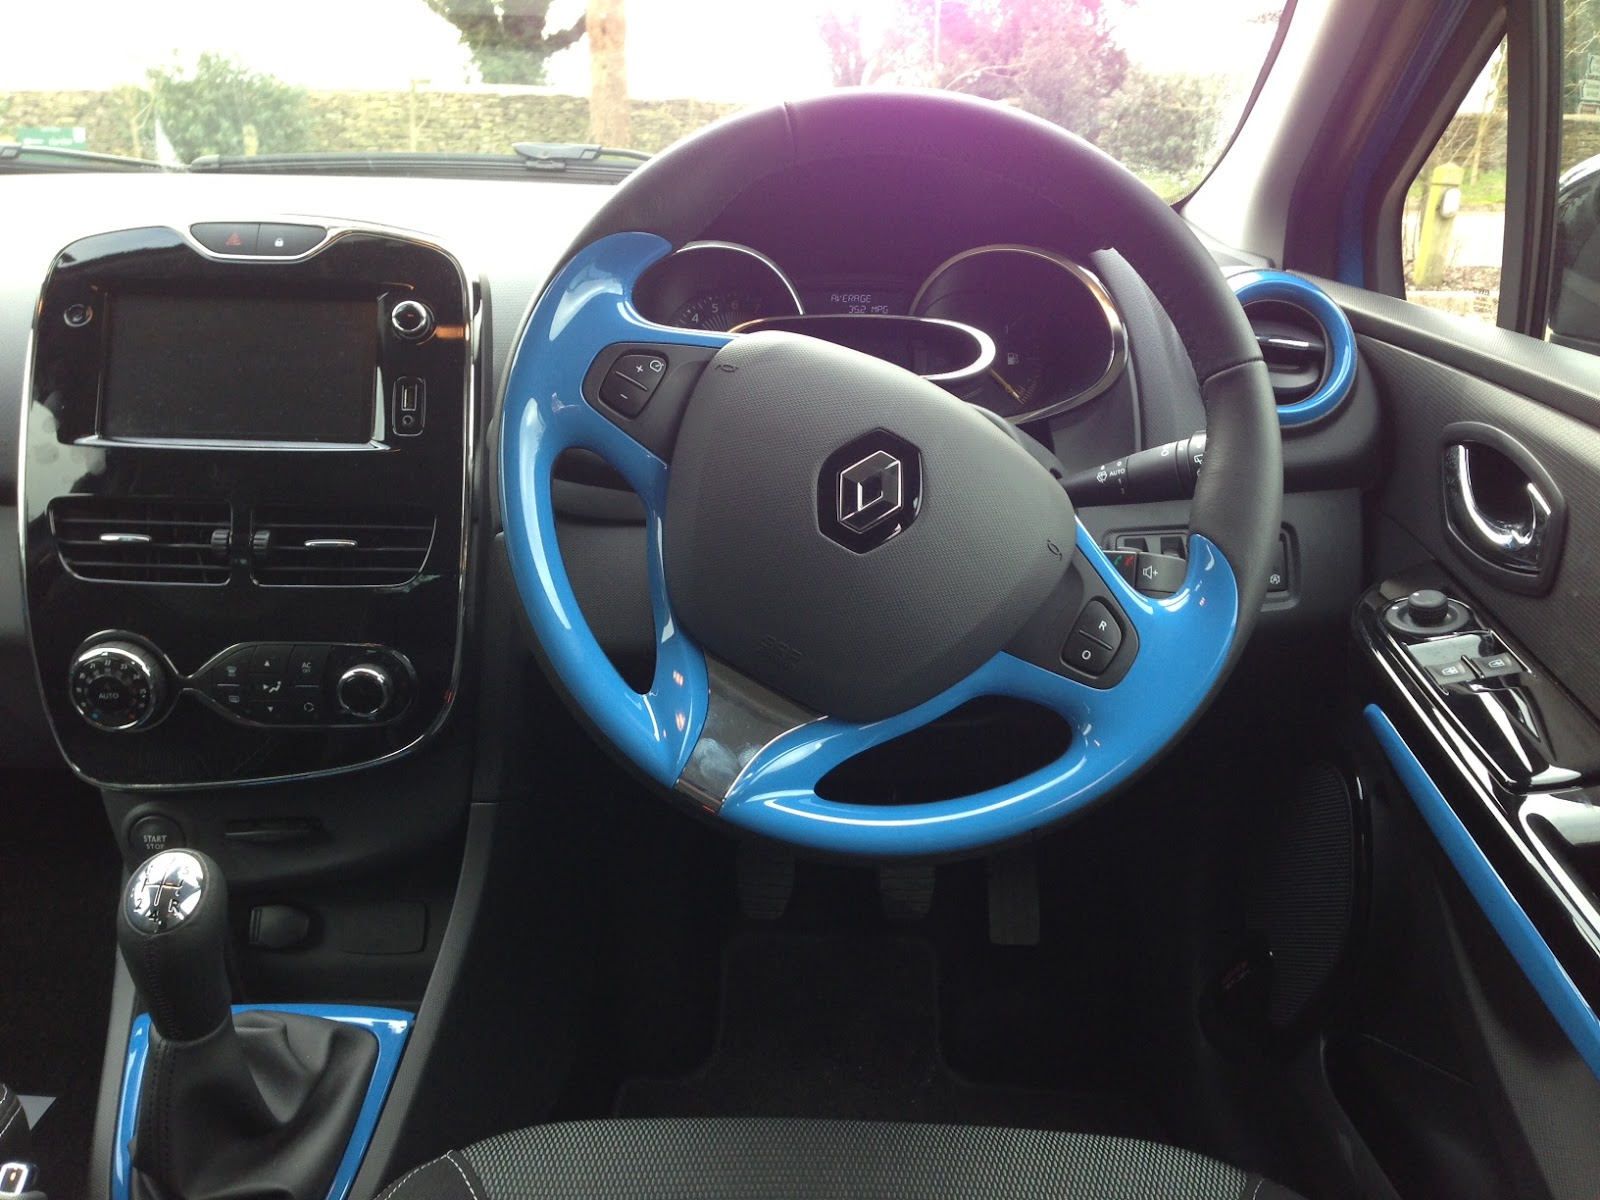 Speedmonkey: 2013 Renault Clio review